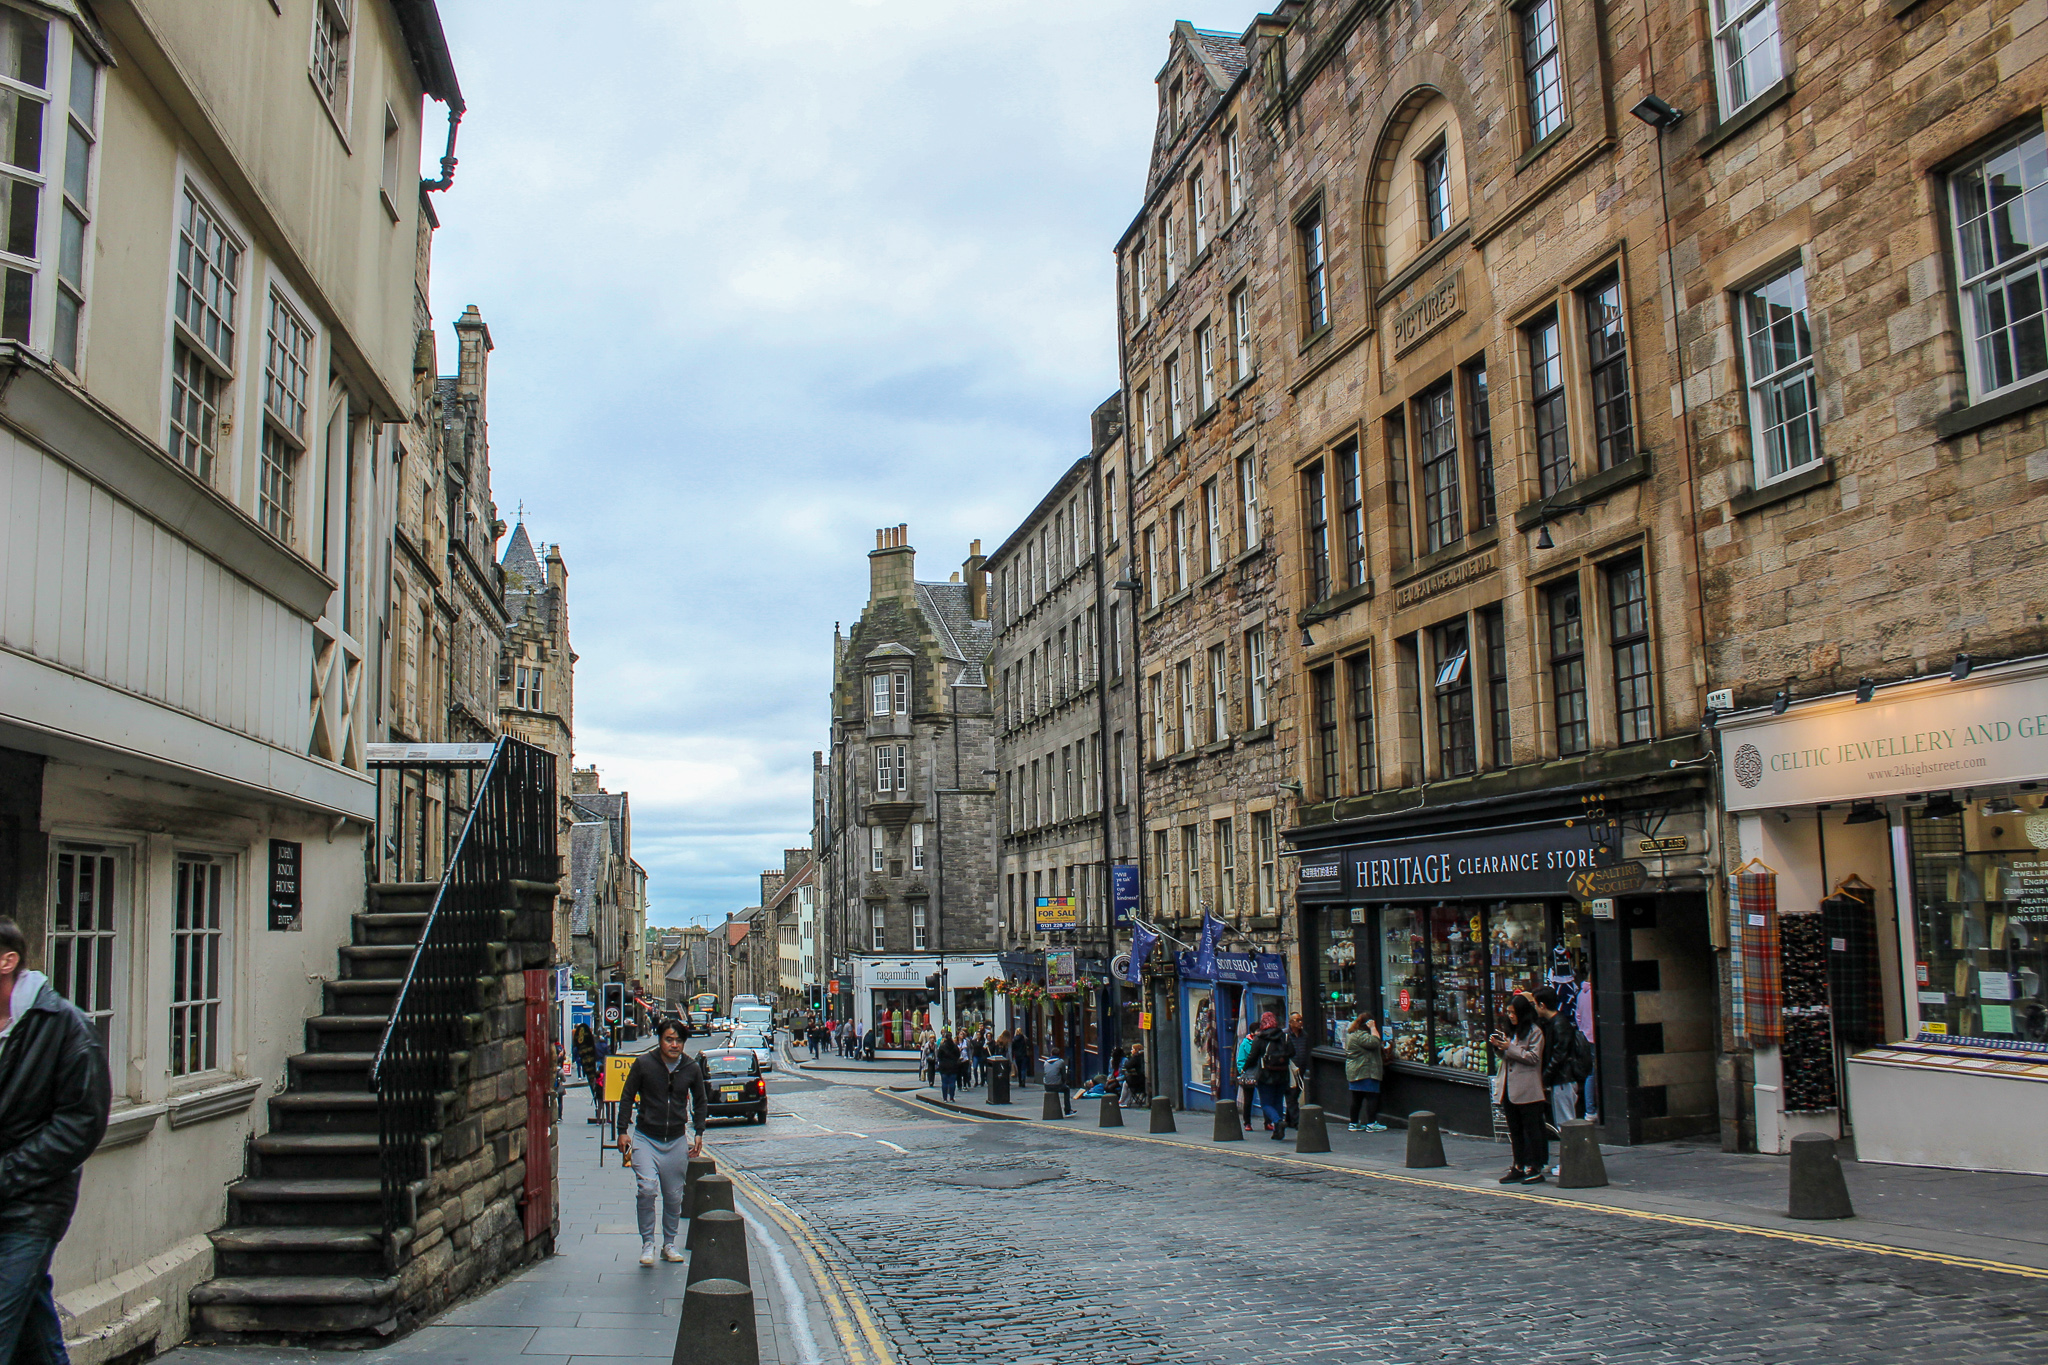 48 hours in edinburgh: don't miss out on all the royal mile has to offer